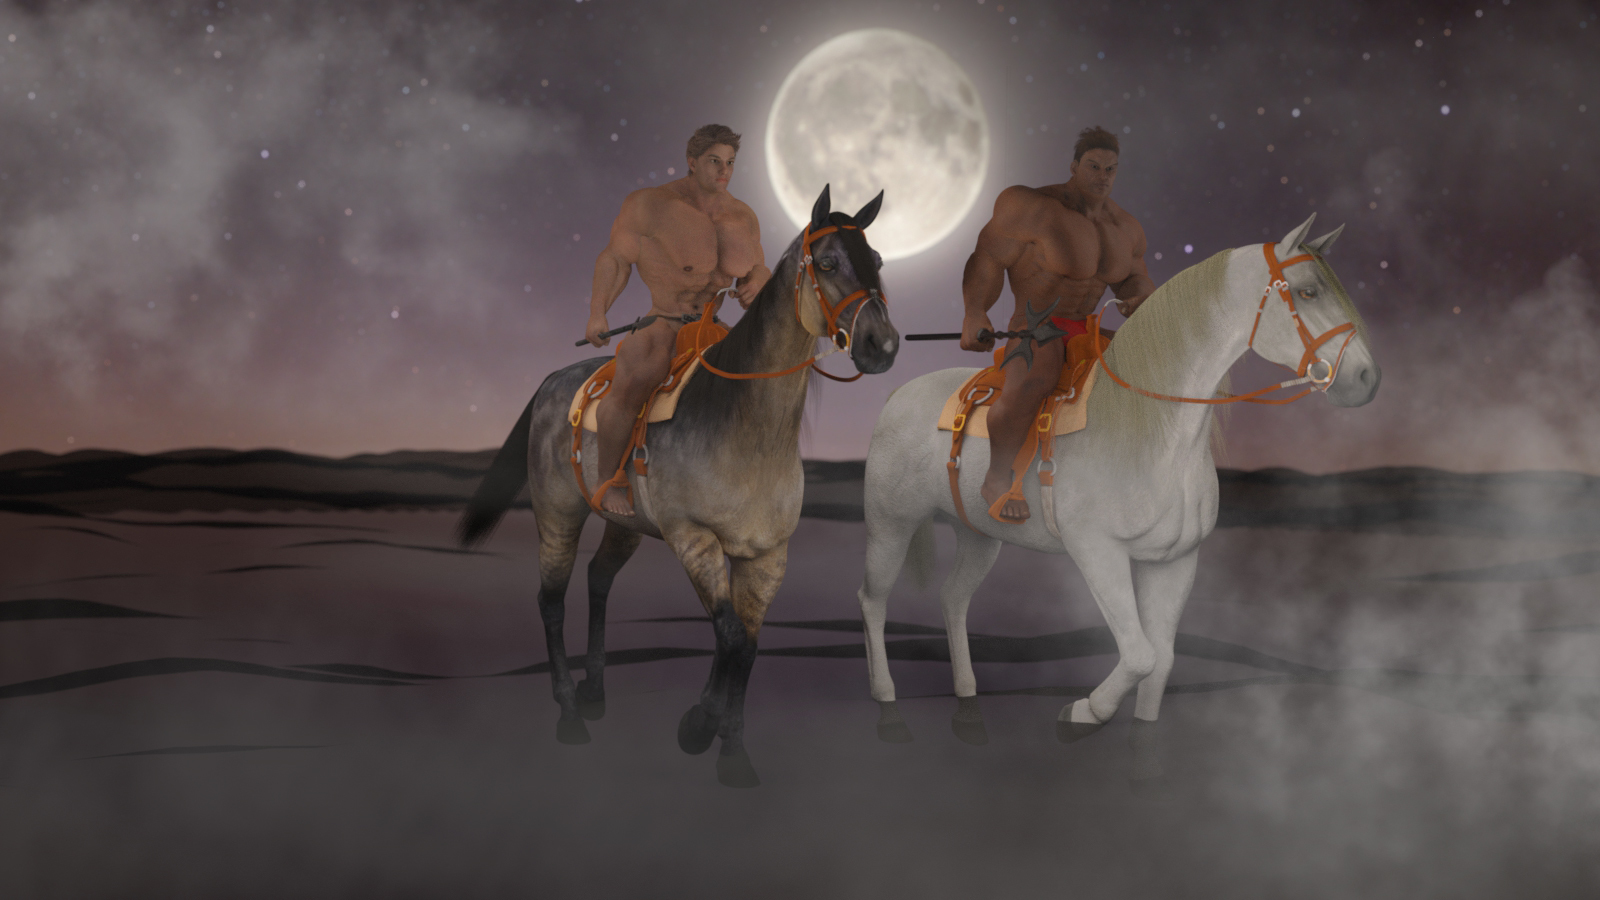 Riders in the moonlight